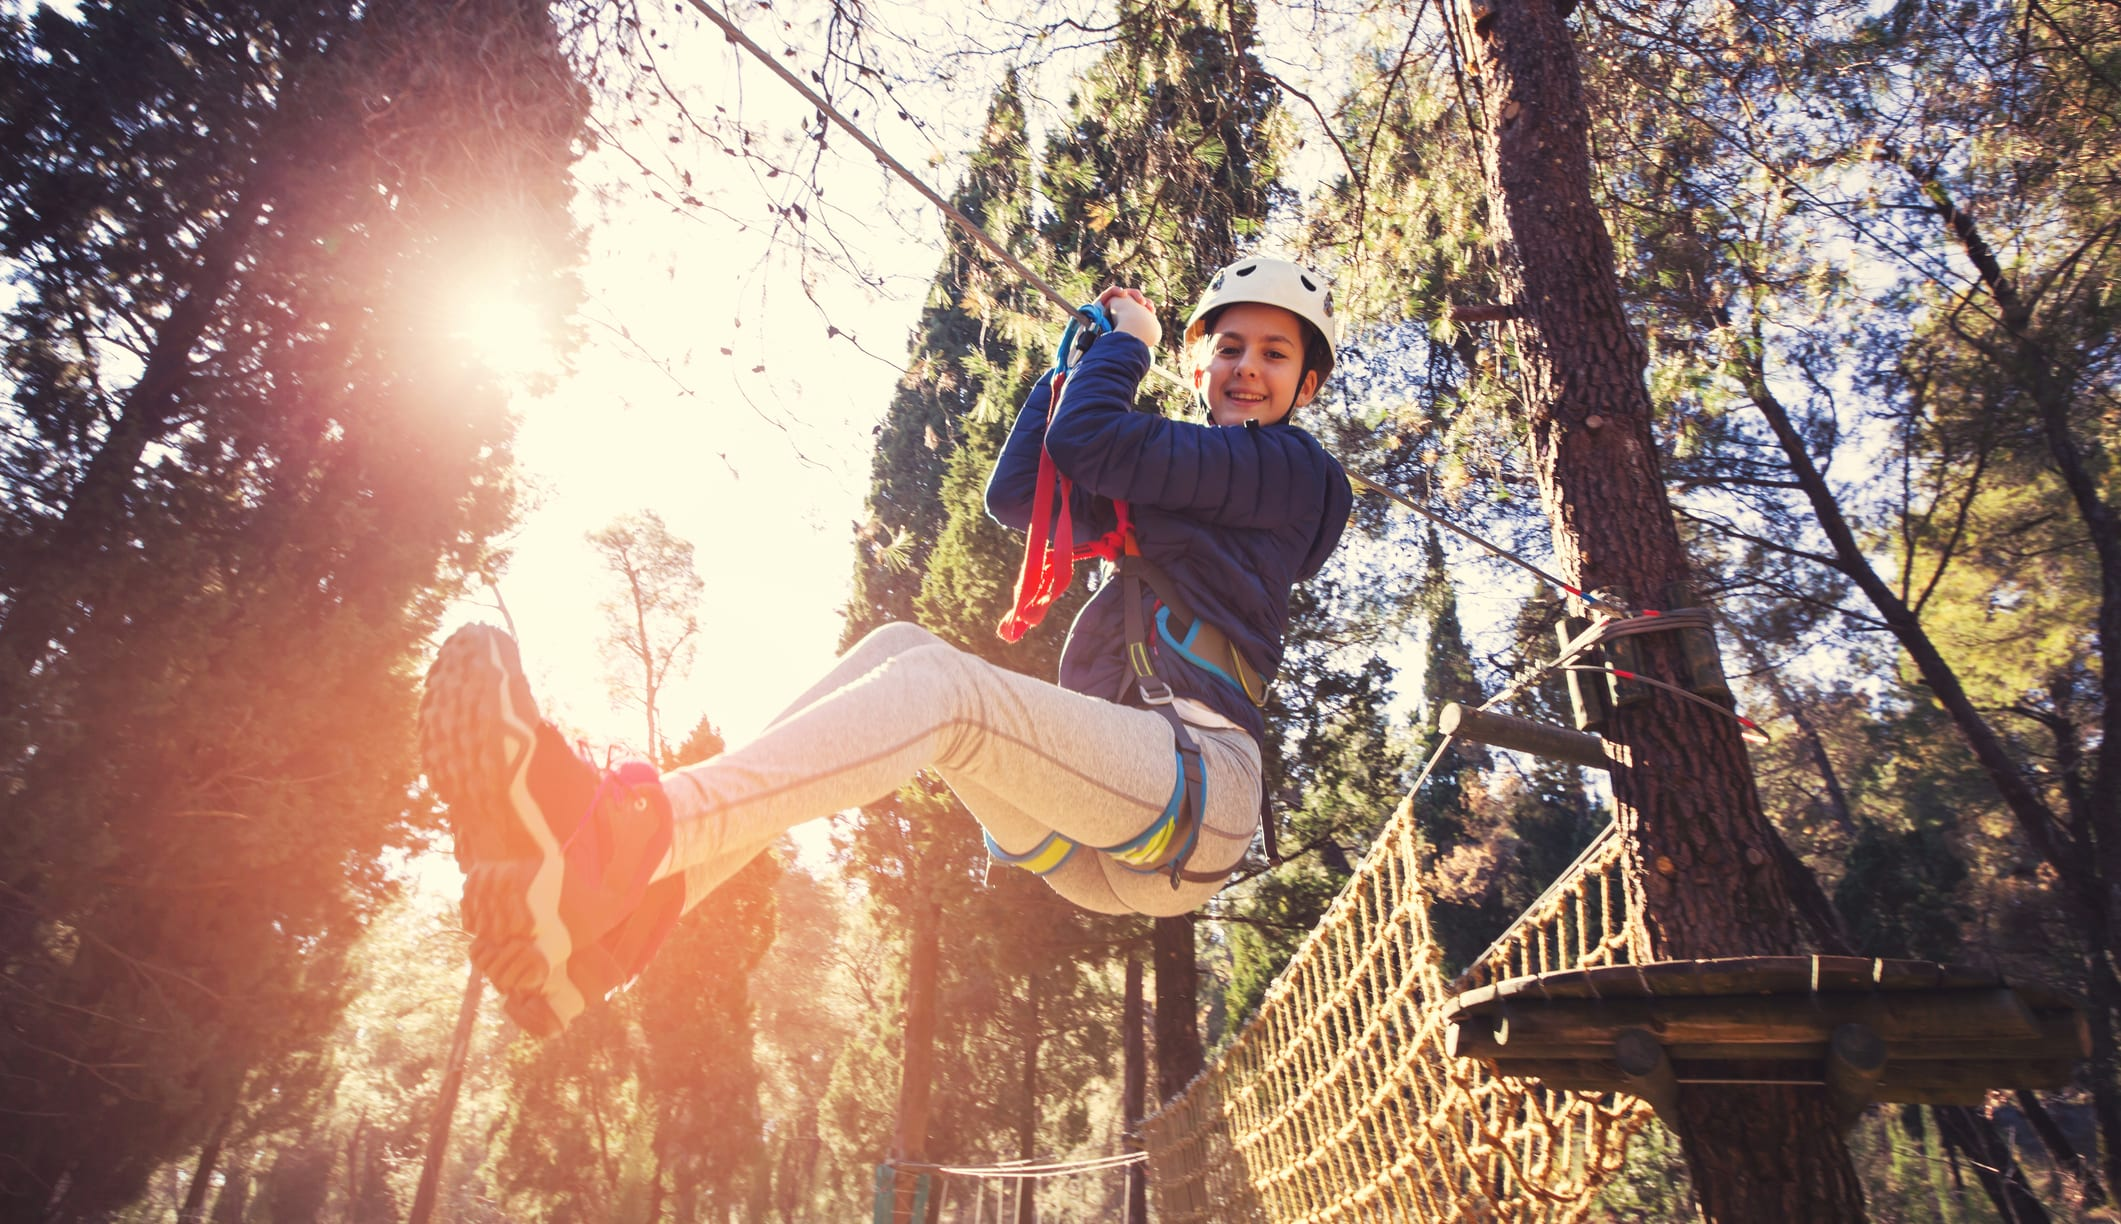 kid on zipline